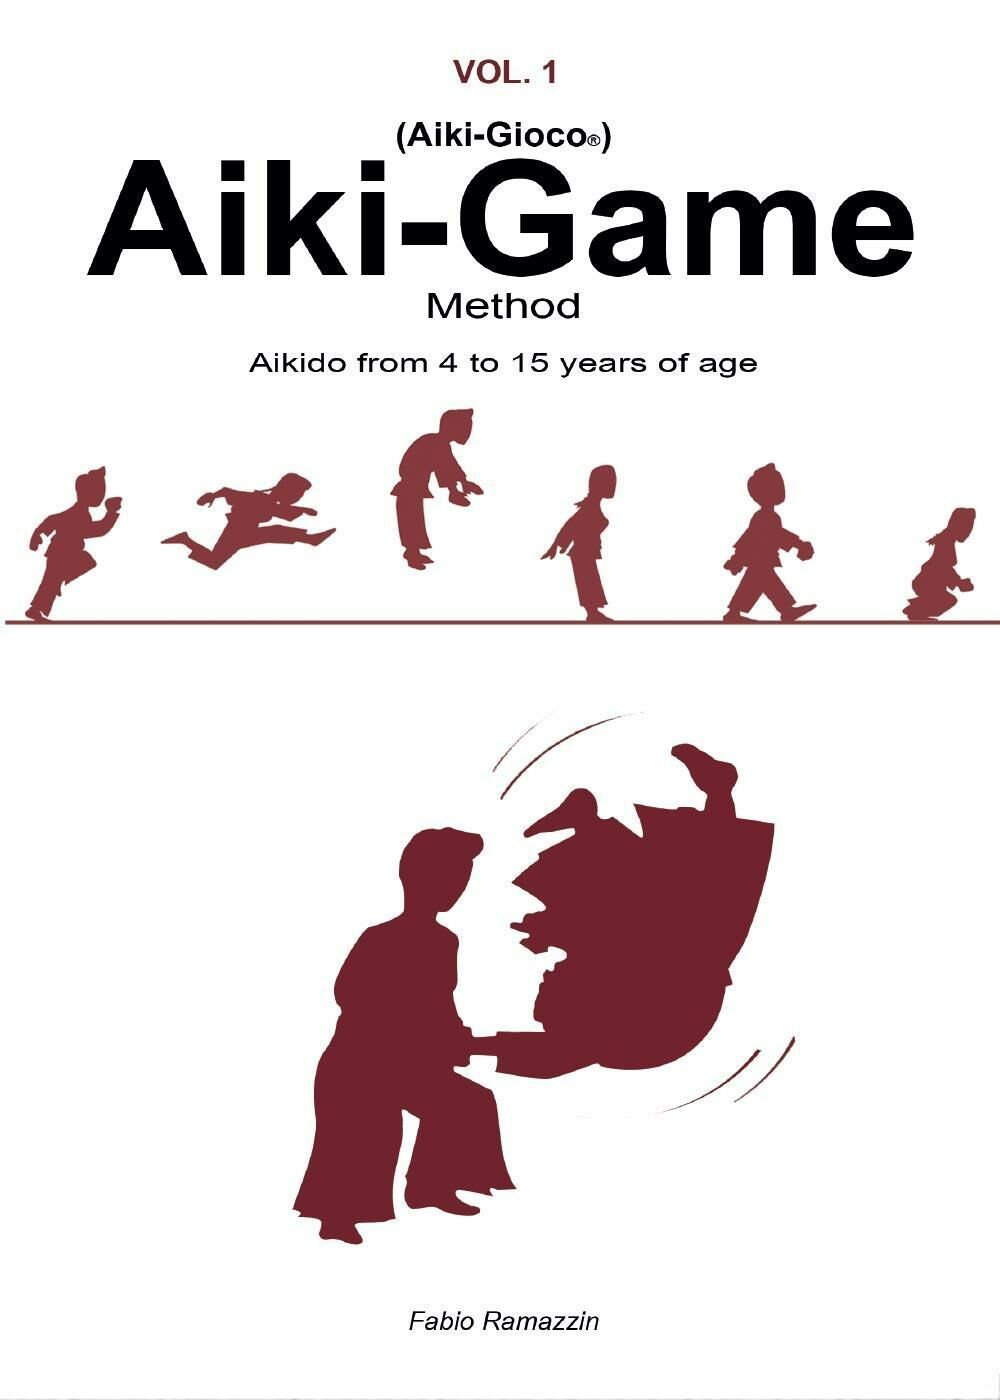 Aiki-Game Method. Aikido from 4 to 15 years of age